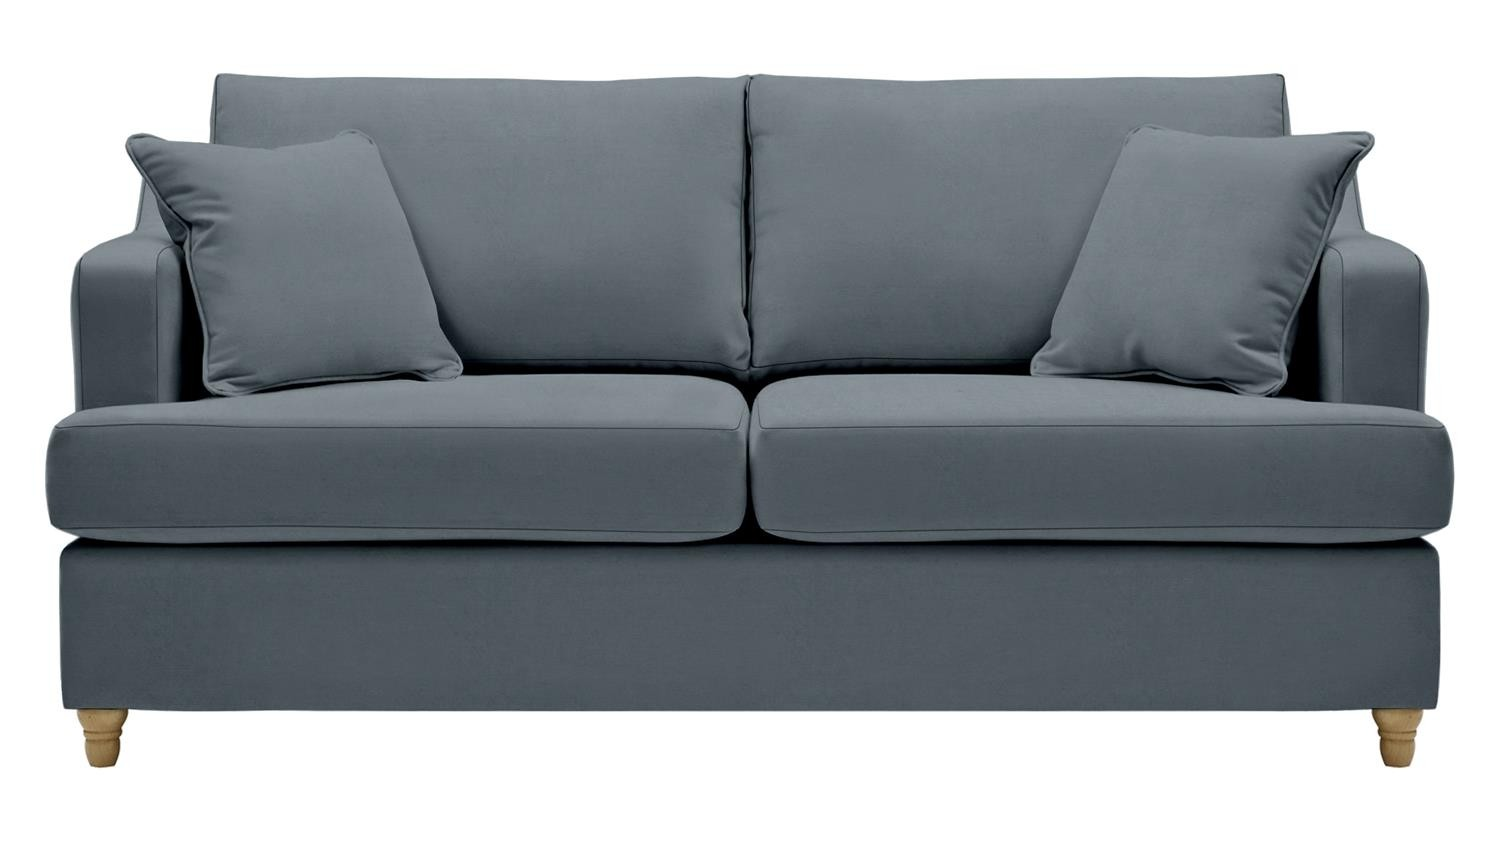 The Atworth 2 Seater Sofa